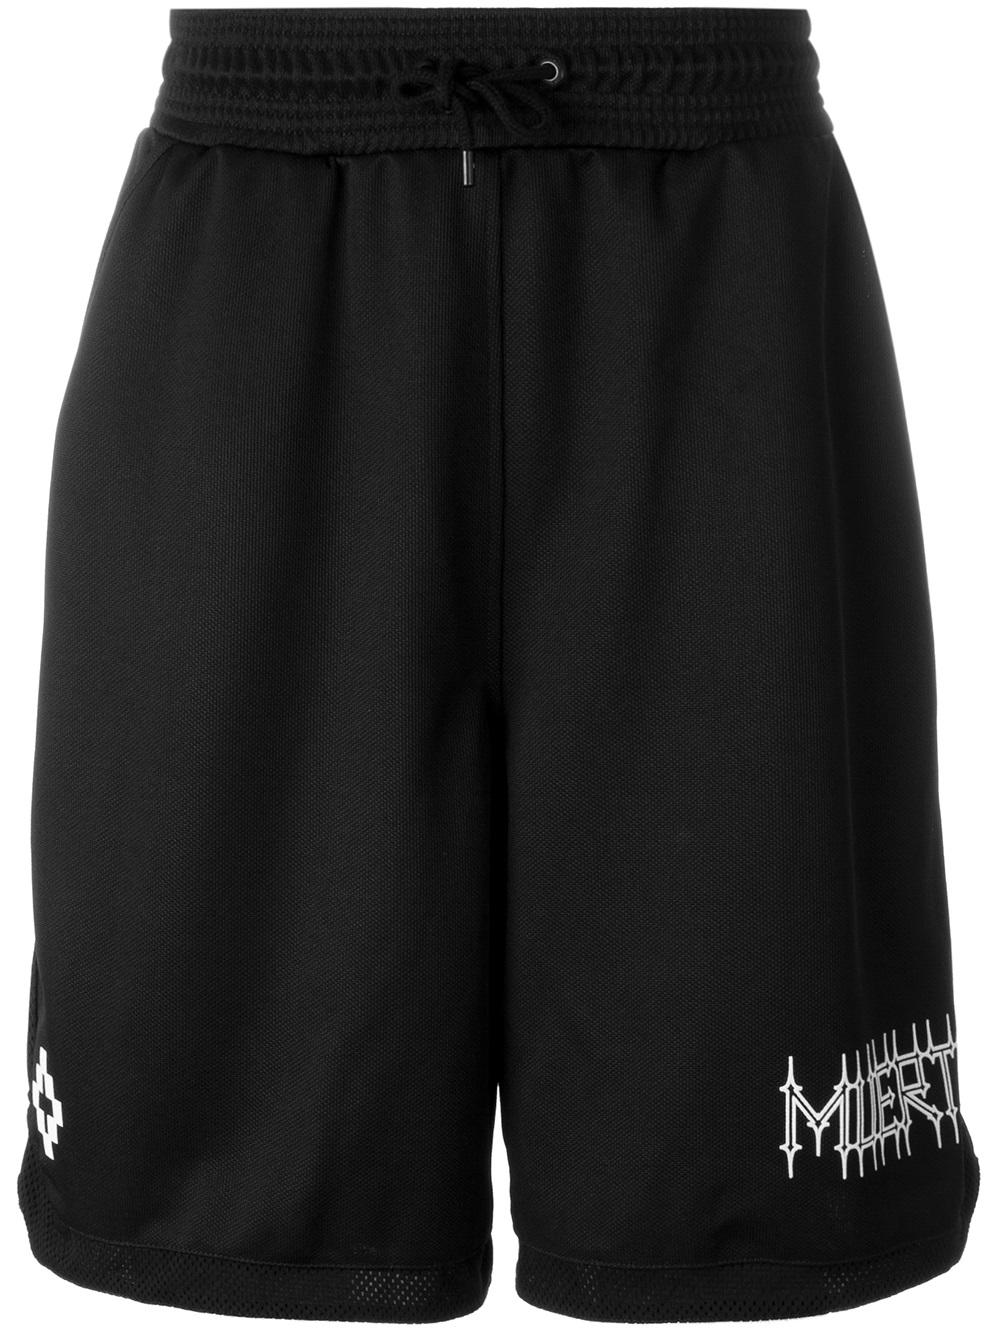 Marcelo Burlon Man SHORTS